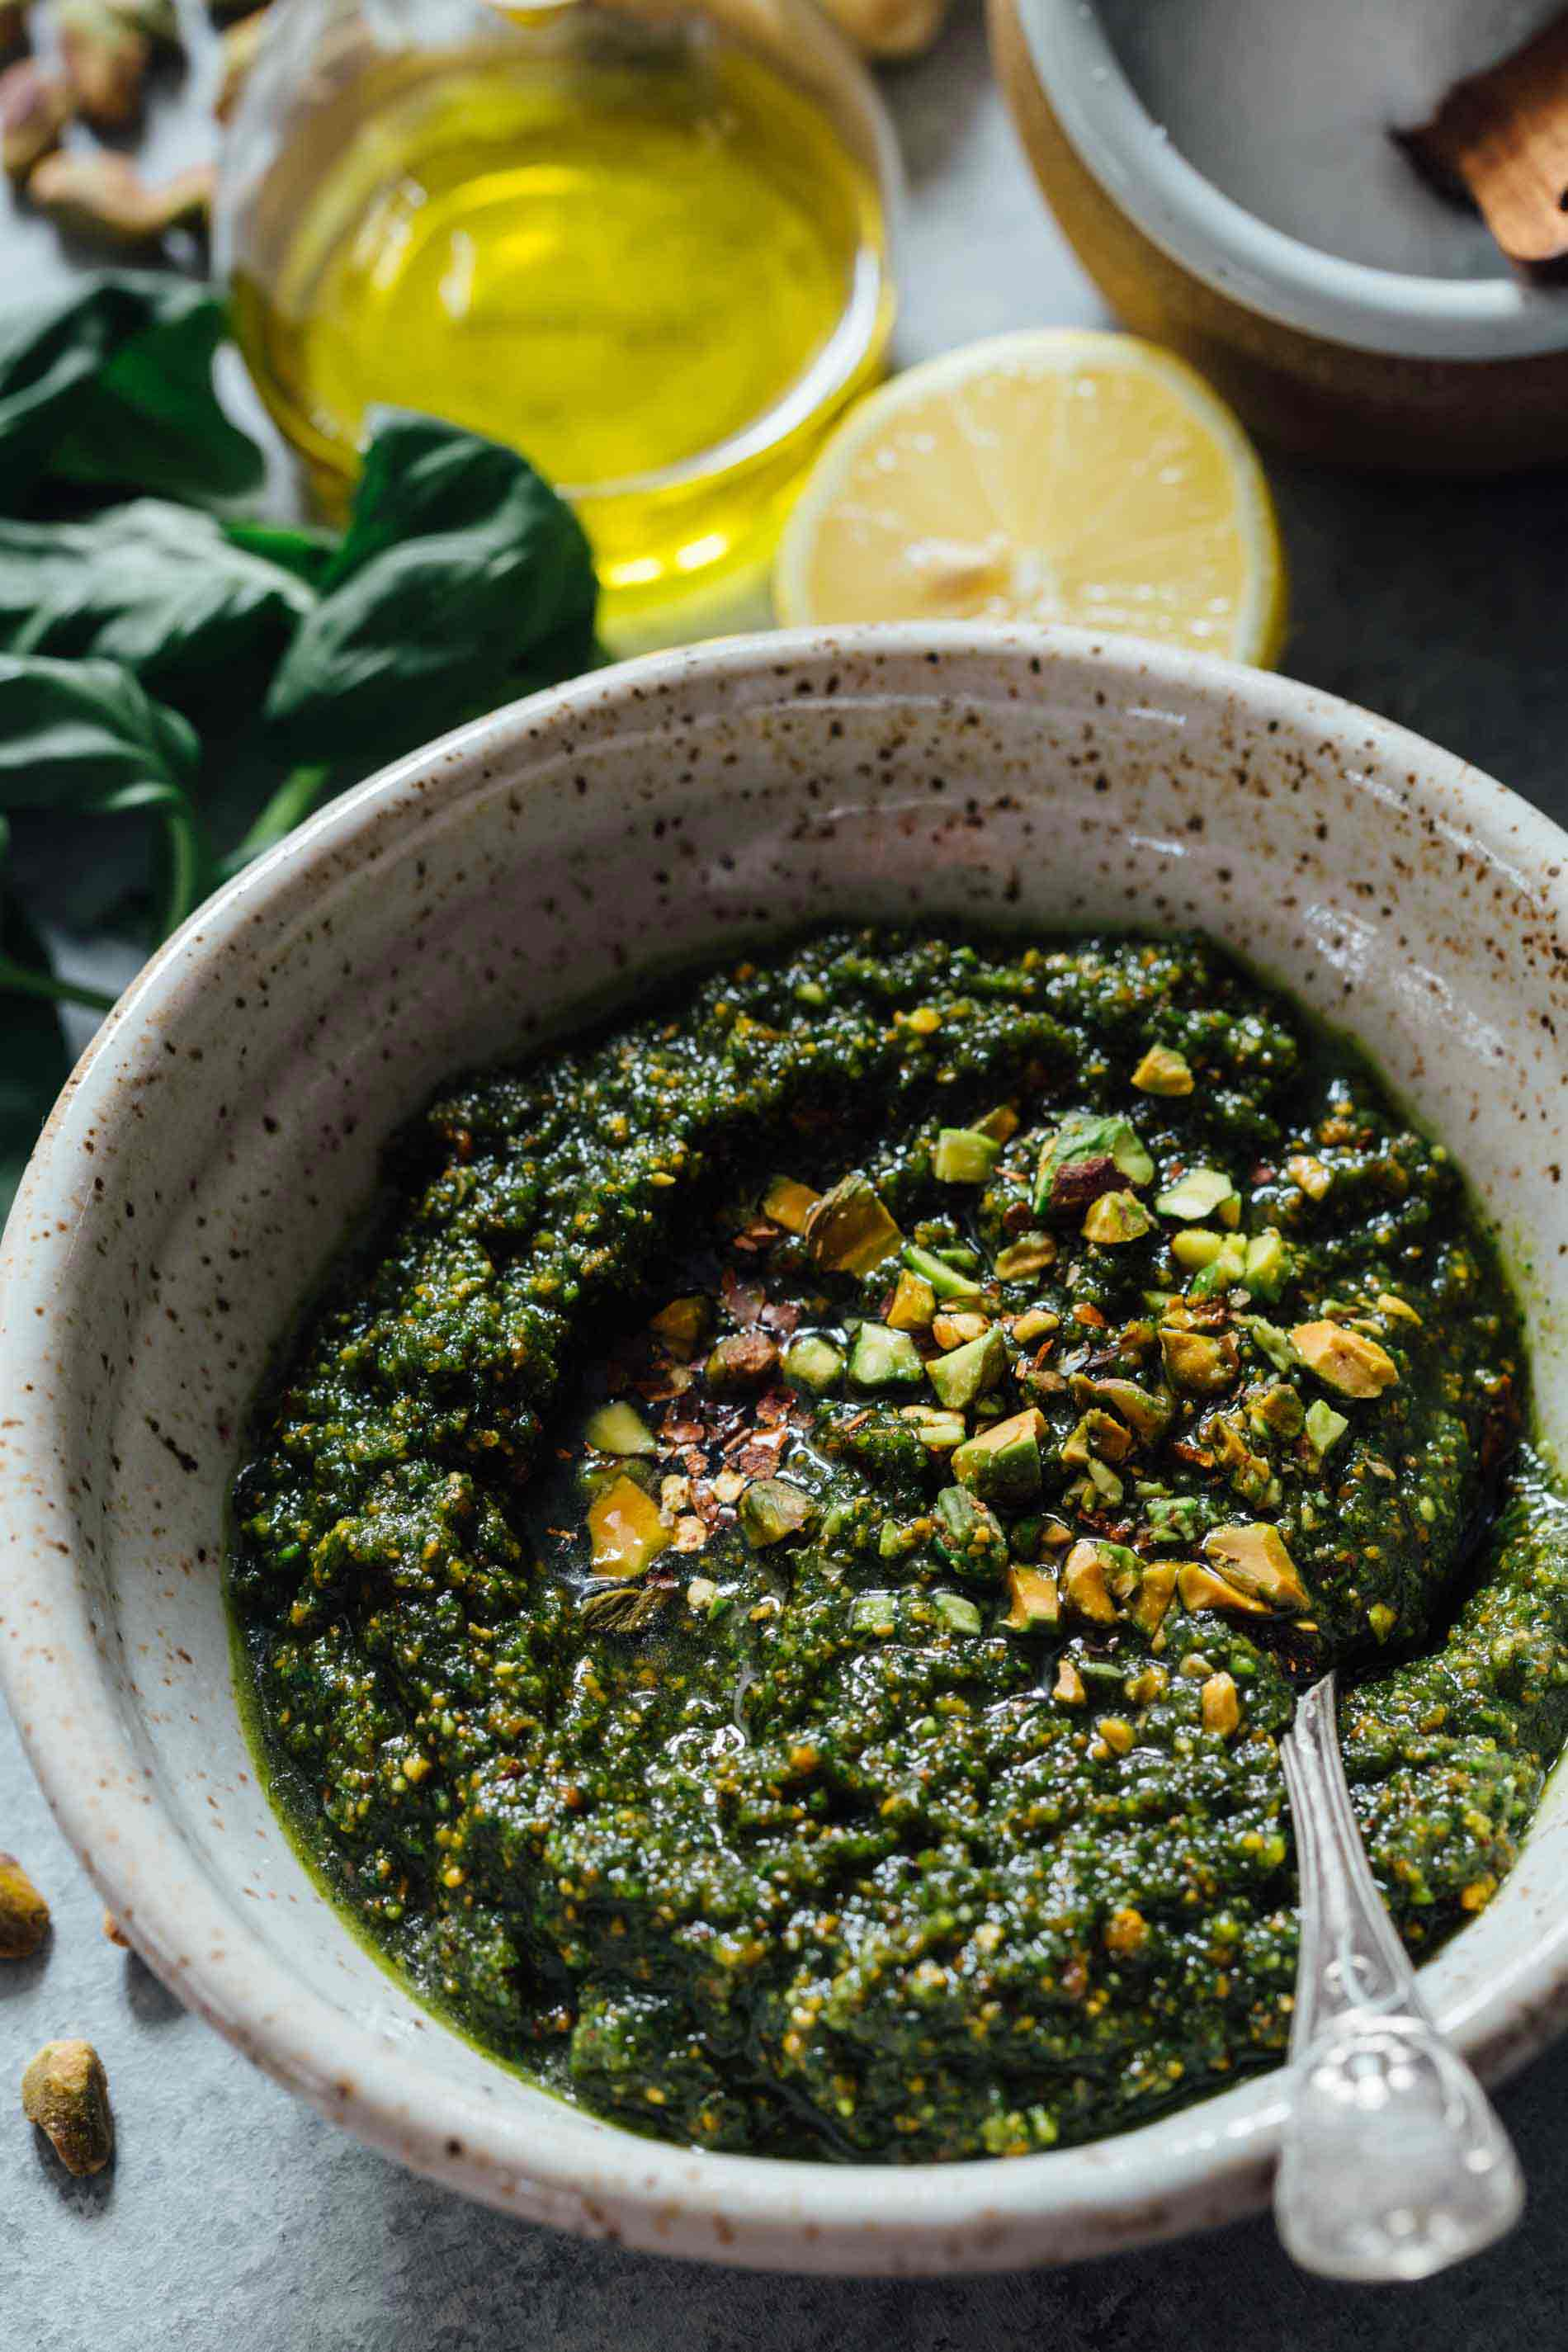 If you need to elevate a rather boring dish, put some pistachio pesto on it and you will instantly elevate a dish! It's versatile enough to use on various meats, pastas, and more! #pistachio #pistachiorecipe #pistachiopesto #pestorecipe